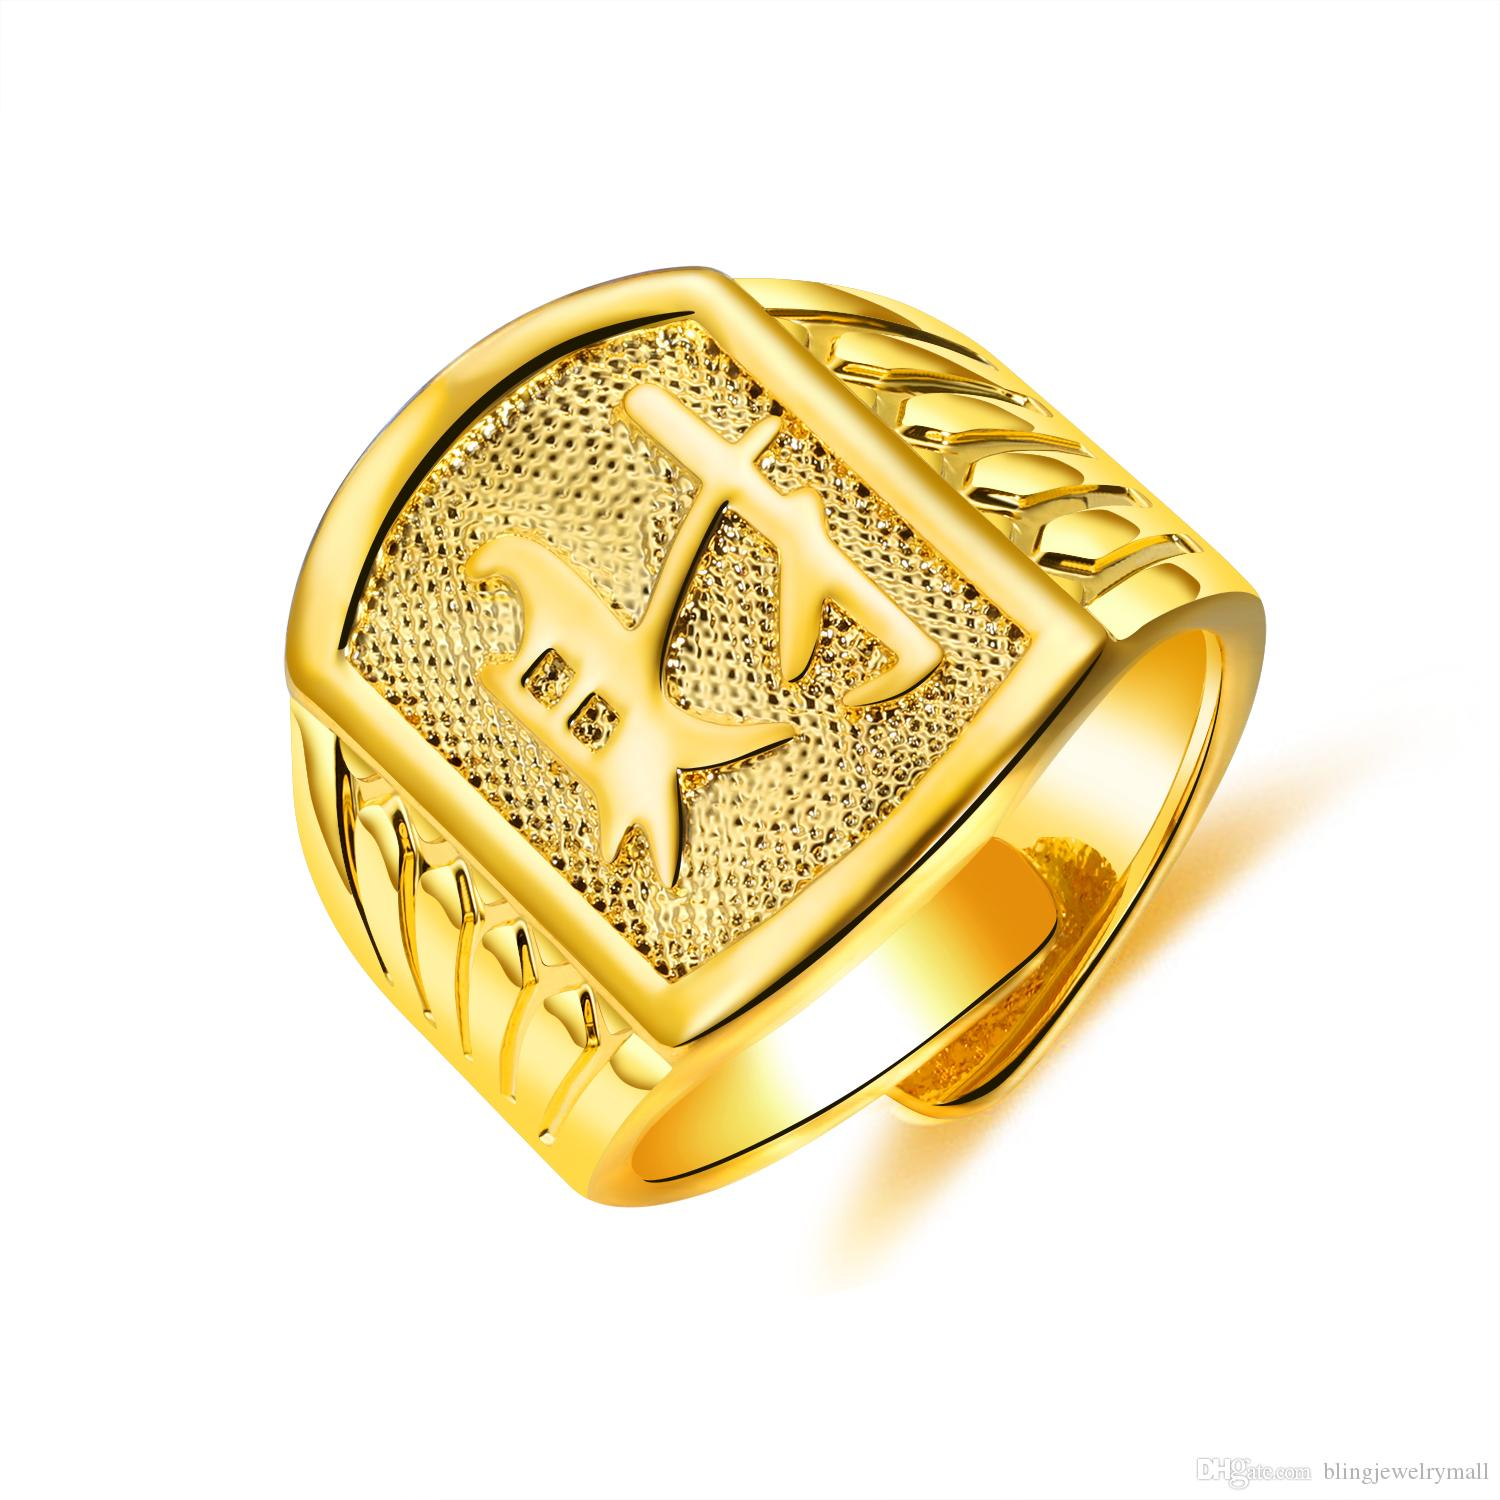 2019 Classic Gold Ring Menwomen Gift Chinese Engraving Good Luck Statement Rings Carving 21mm Wide Wedding Bands Kj080 From Blingjewelrymall: Wide Gold Wedding Rings Women At Websimilar.org